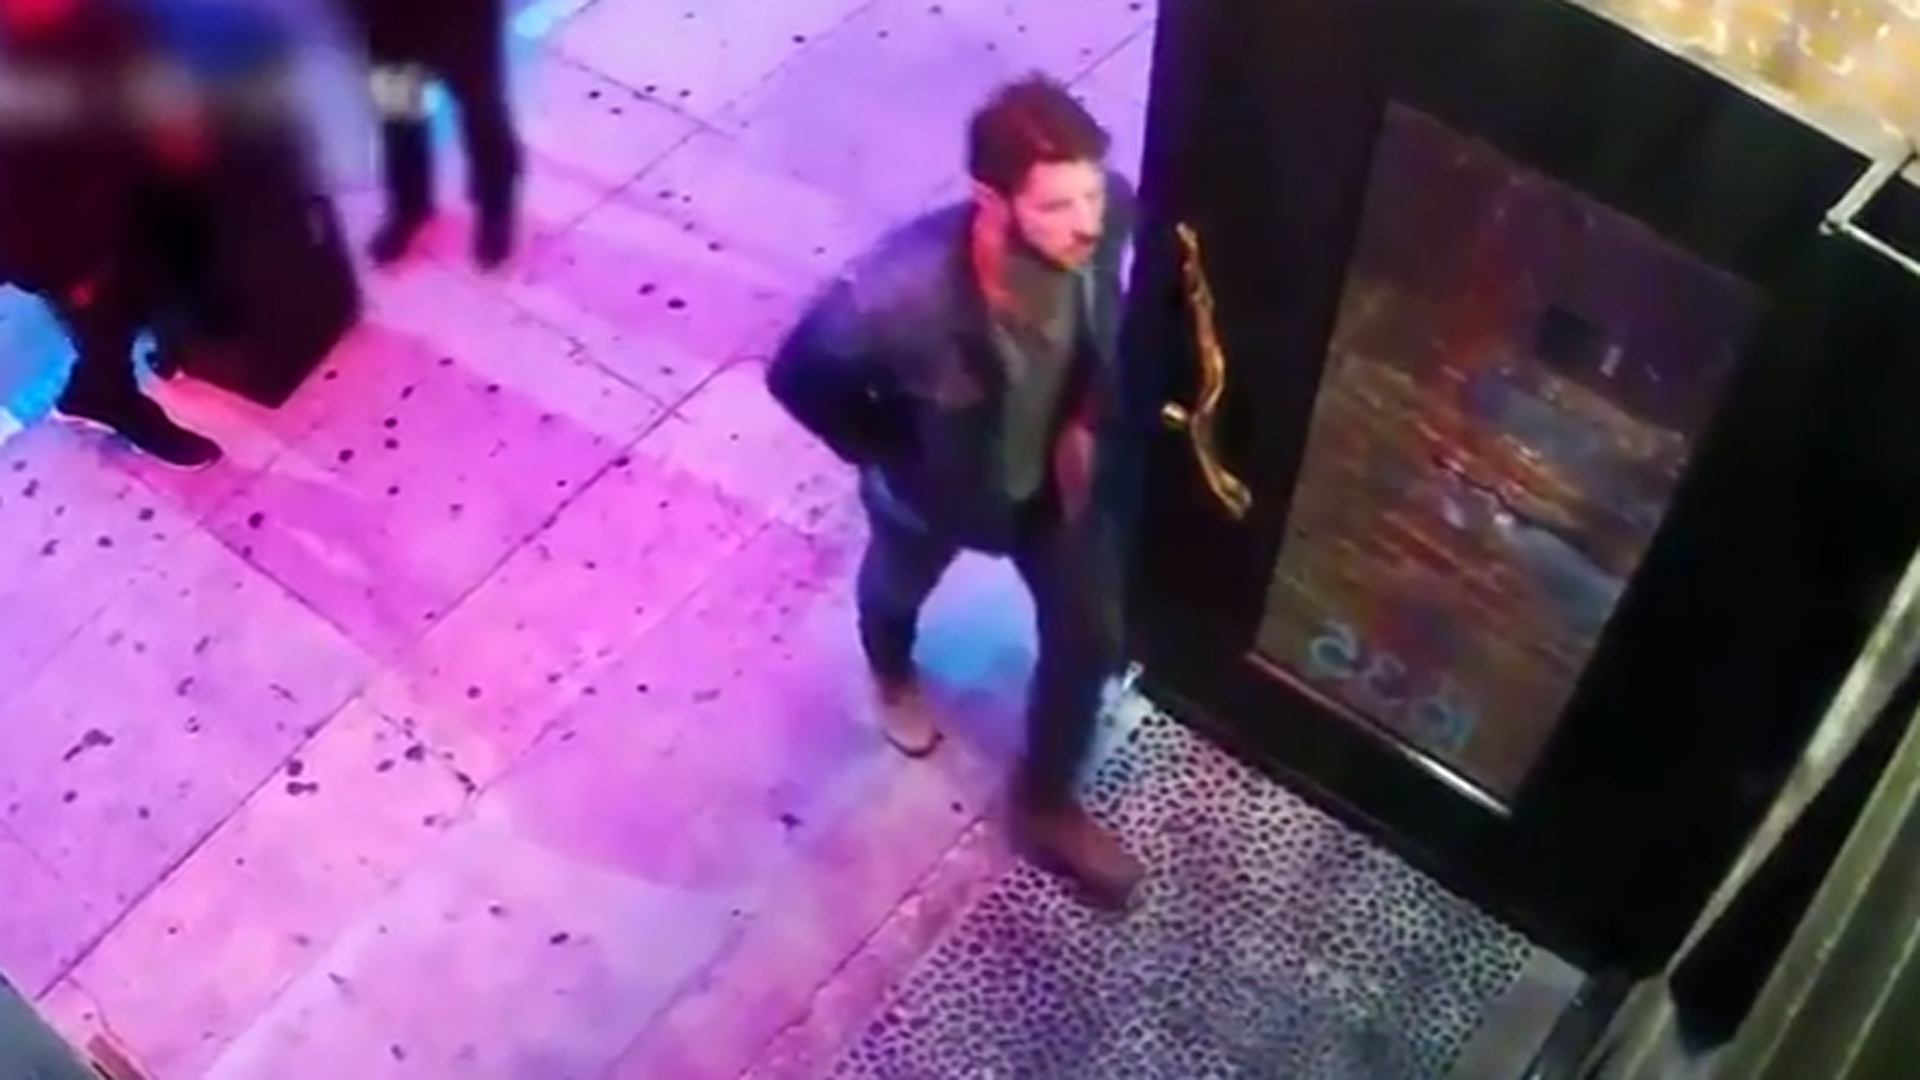 Los Angeles police release surveillance footage on June 15, 2018, showing a purse snatcher targeting a Venice eatery.